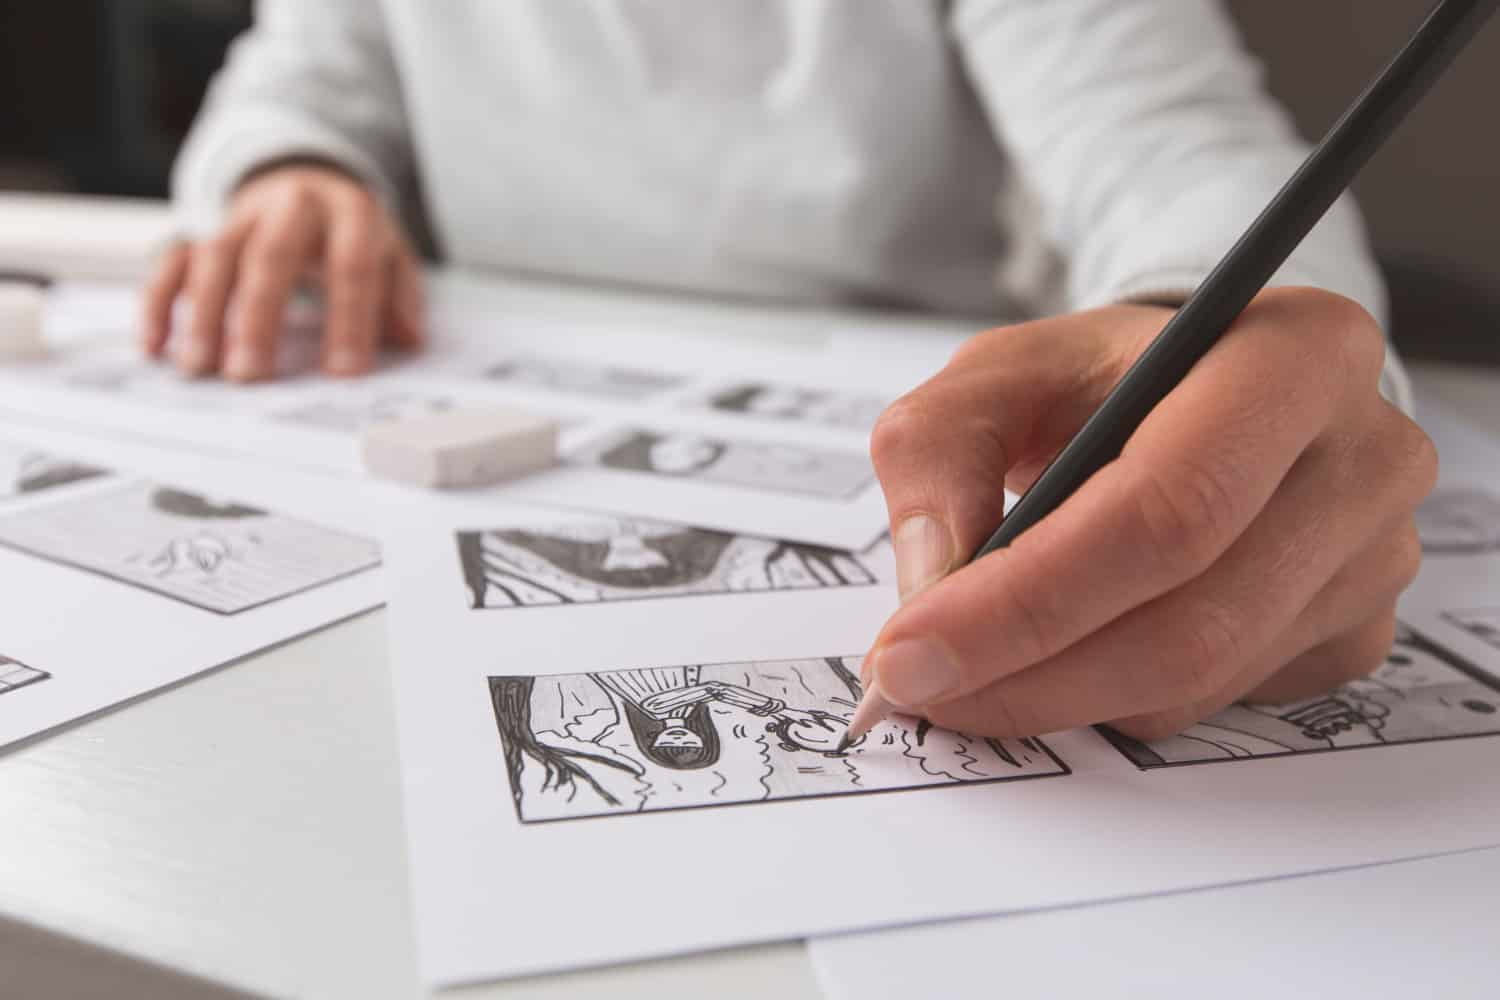 movie pre-production storyboard tools